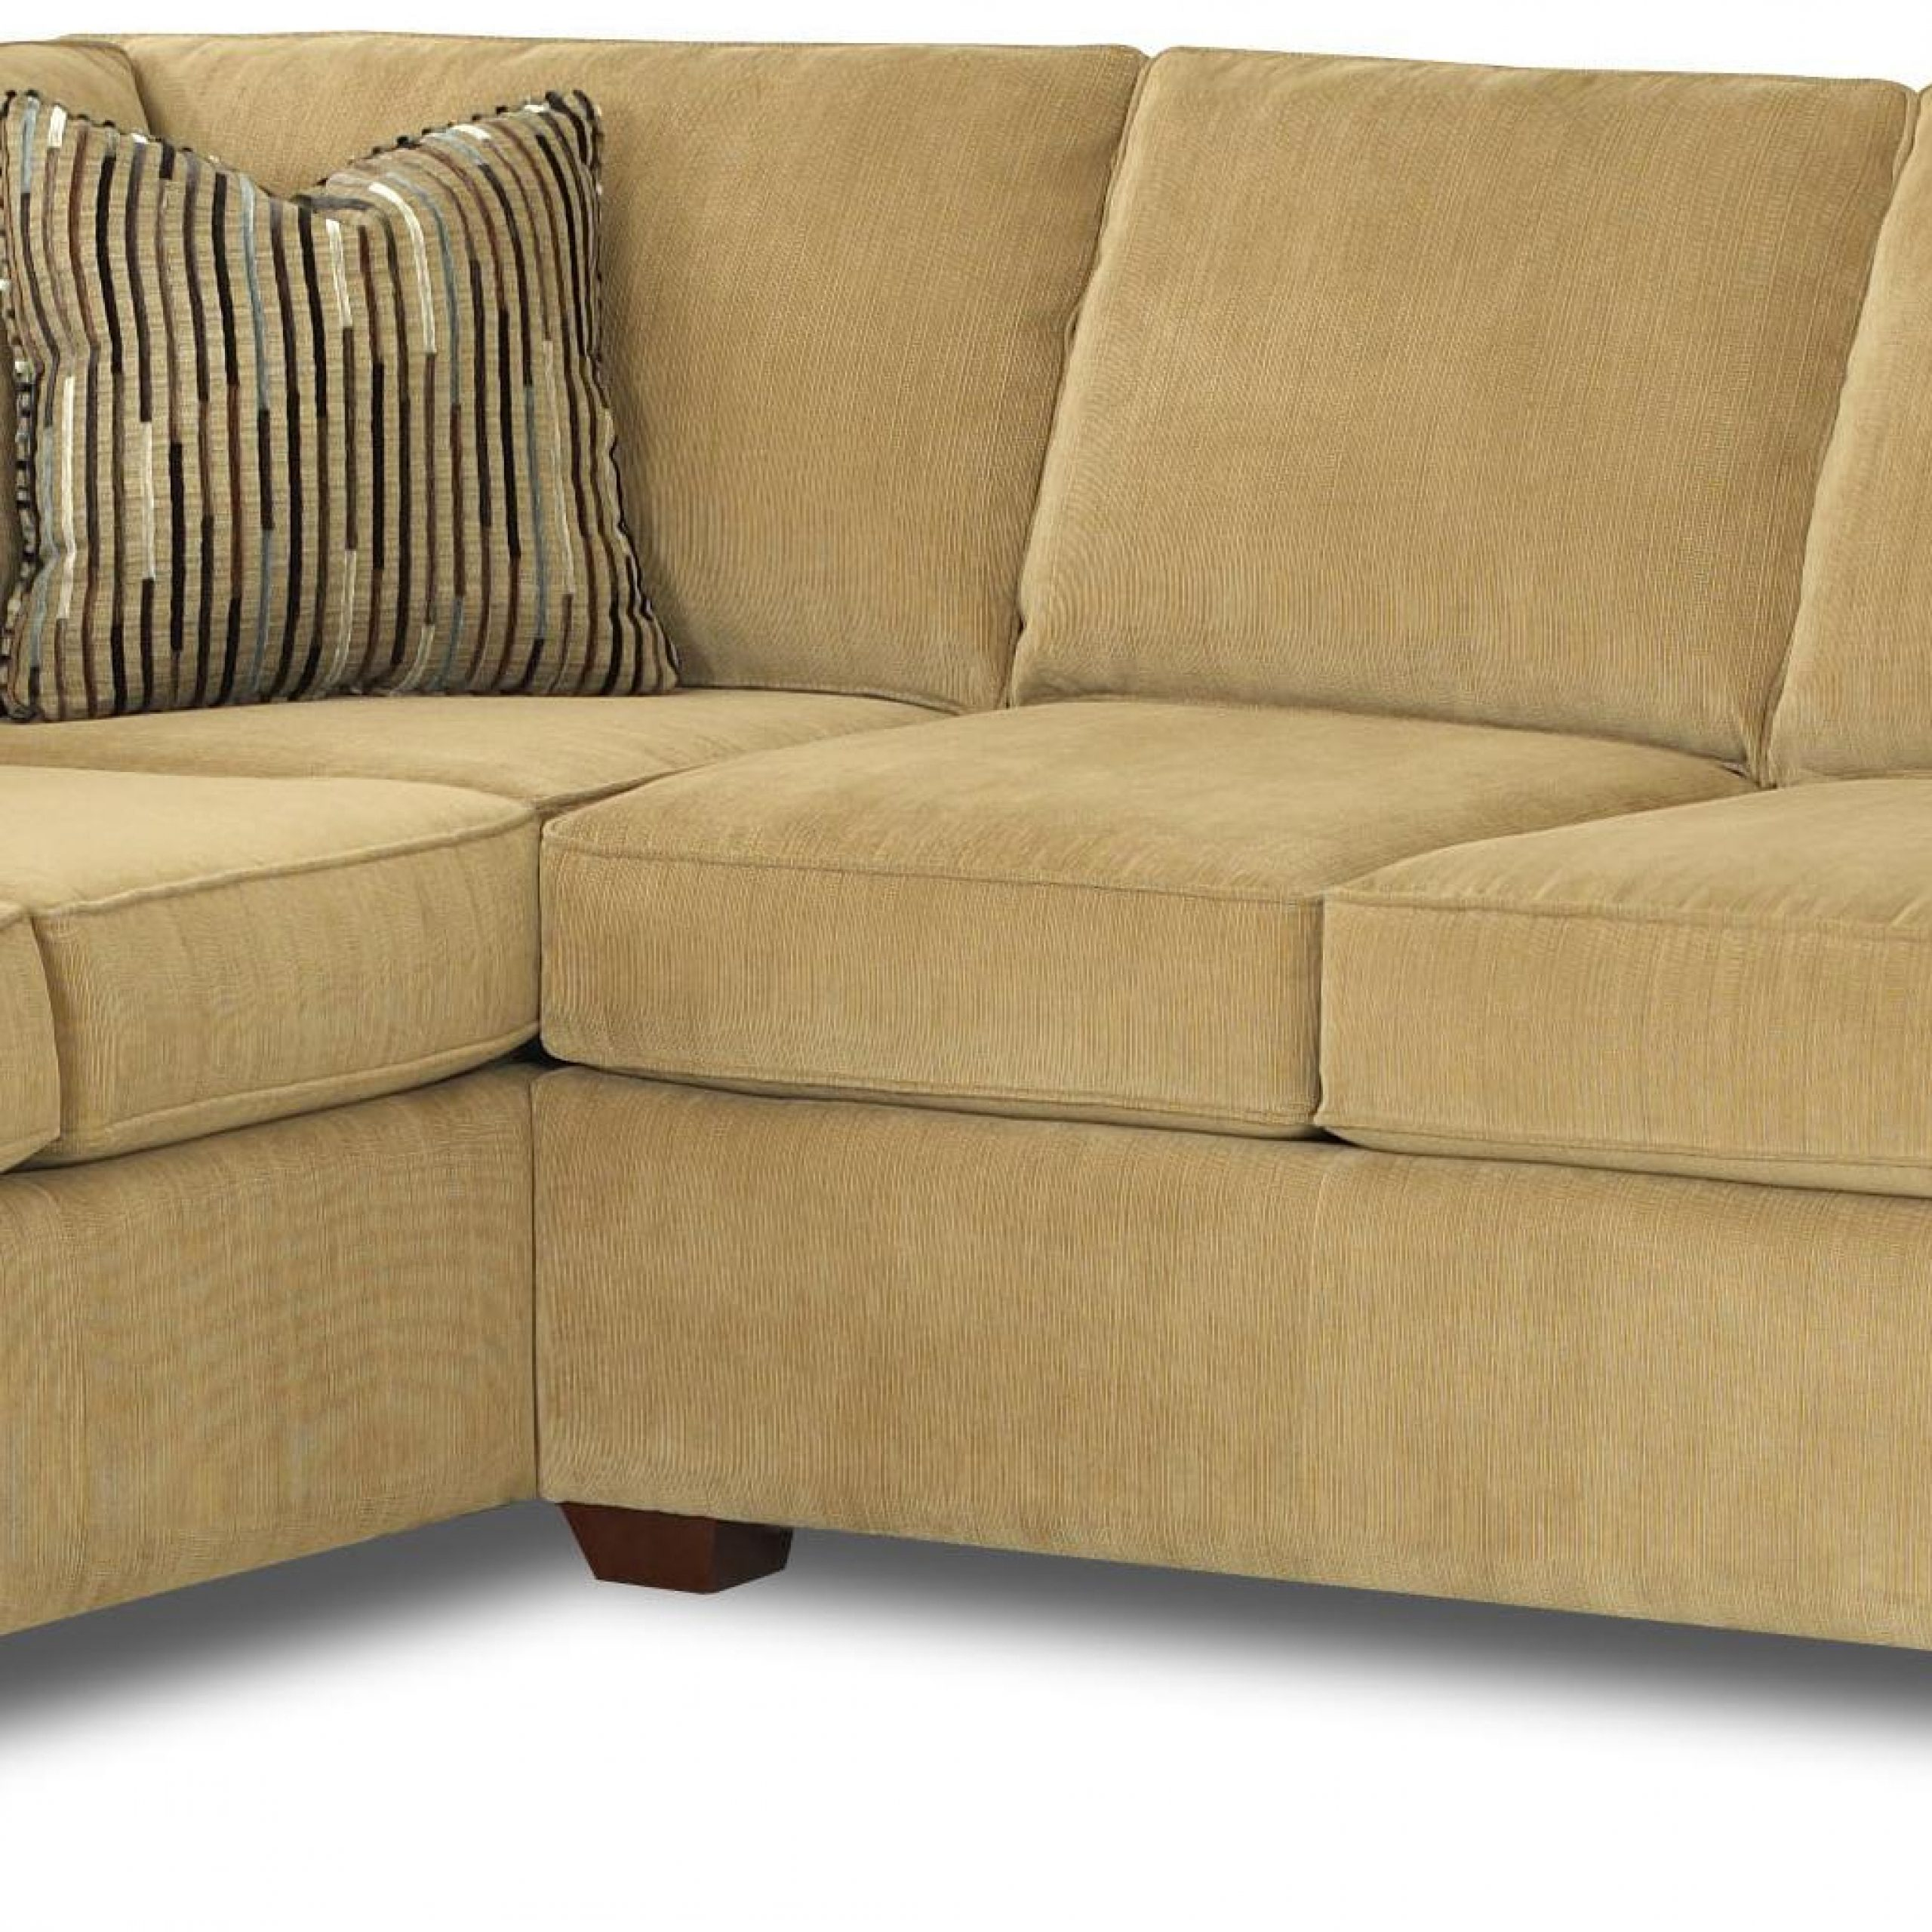 Wolf Within Well Known Owego L Shaped Sectional Sofas (View 19 of 25)